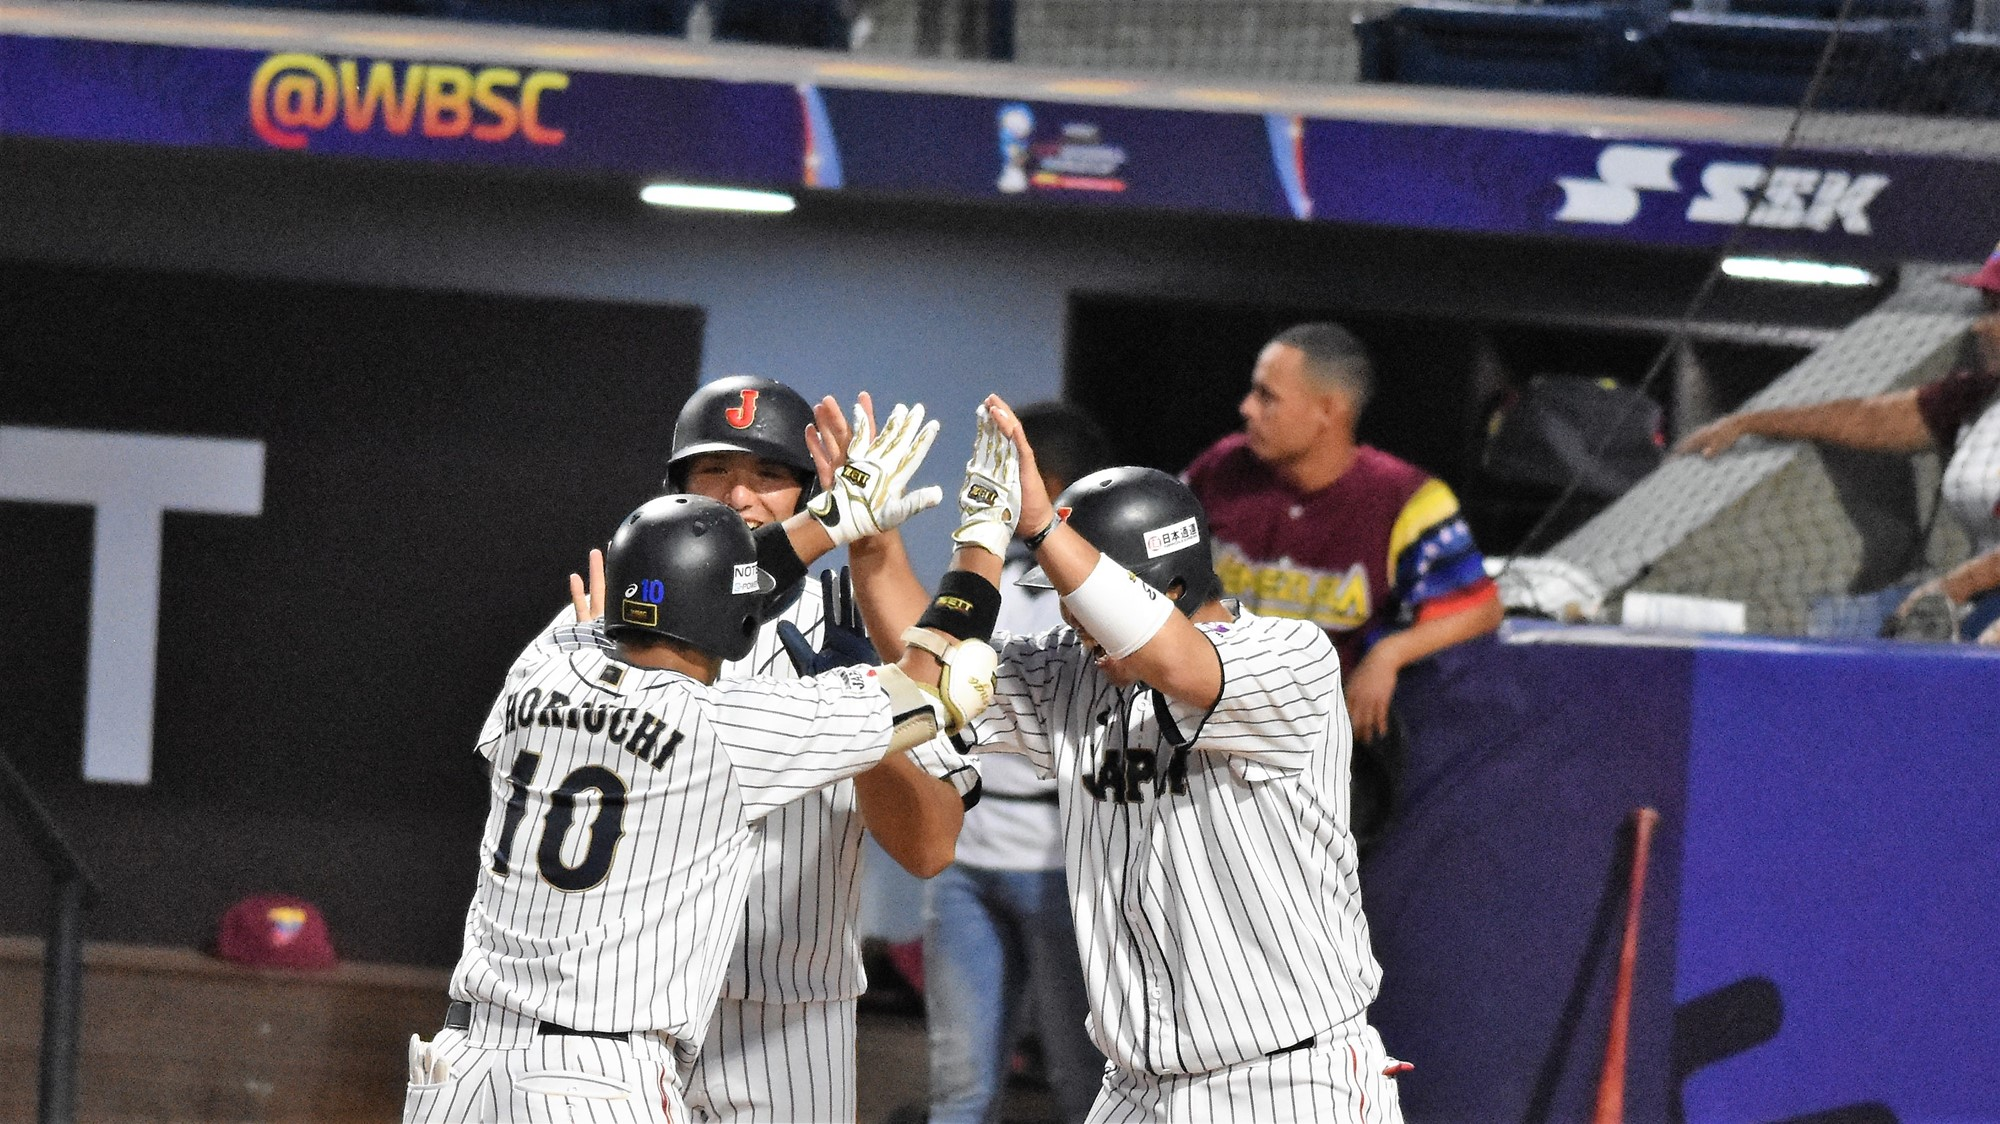 Horiuchi Kengo hit a three run homer in the bottom of the eighth. Here the celebration